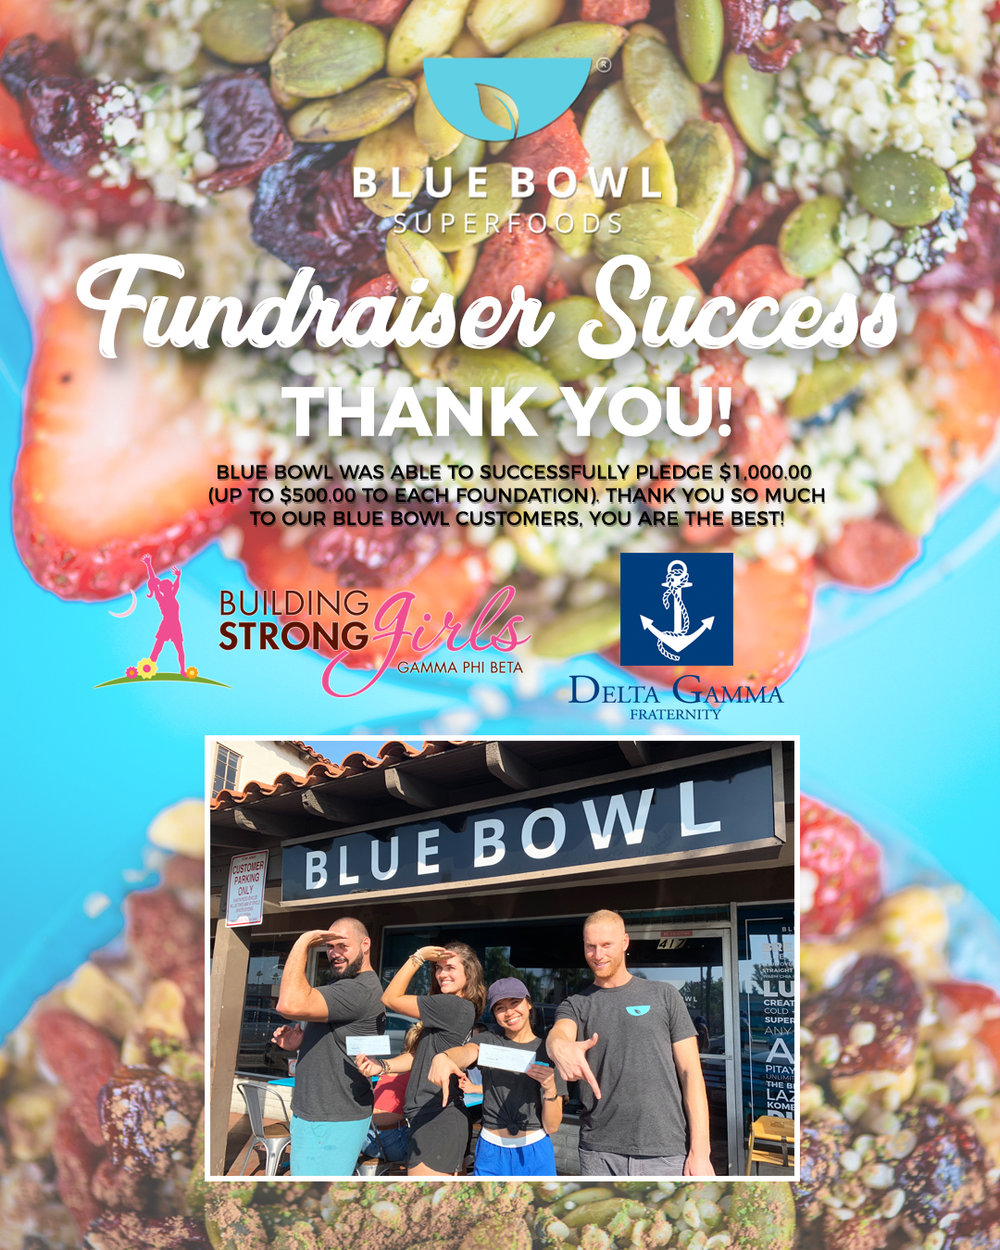 BlueBowl-IG-102518-FundraiserSuccess.jpg